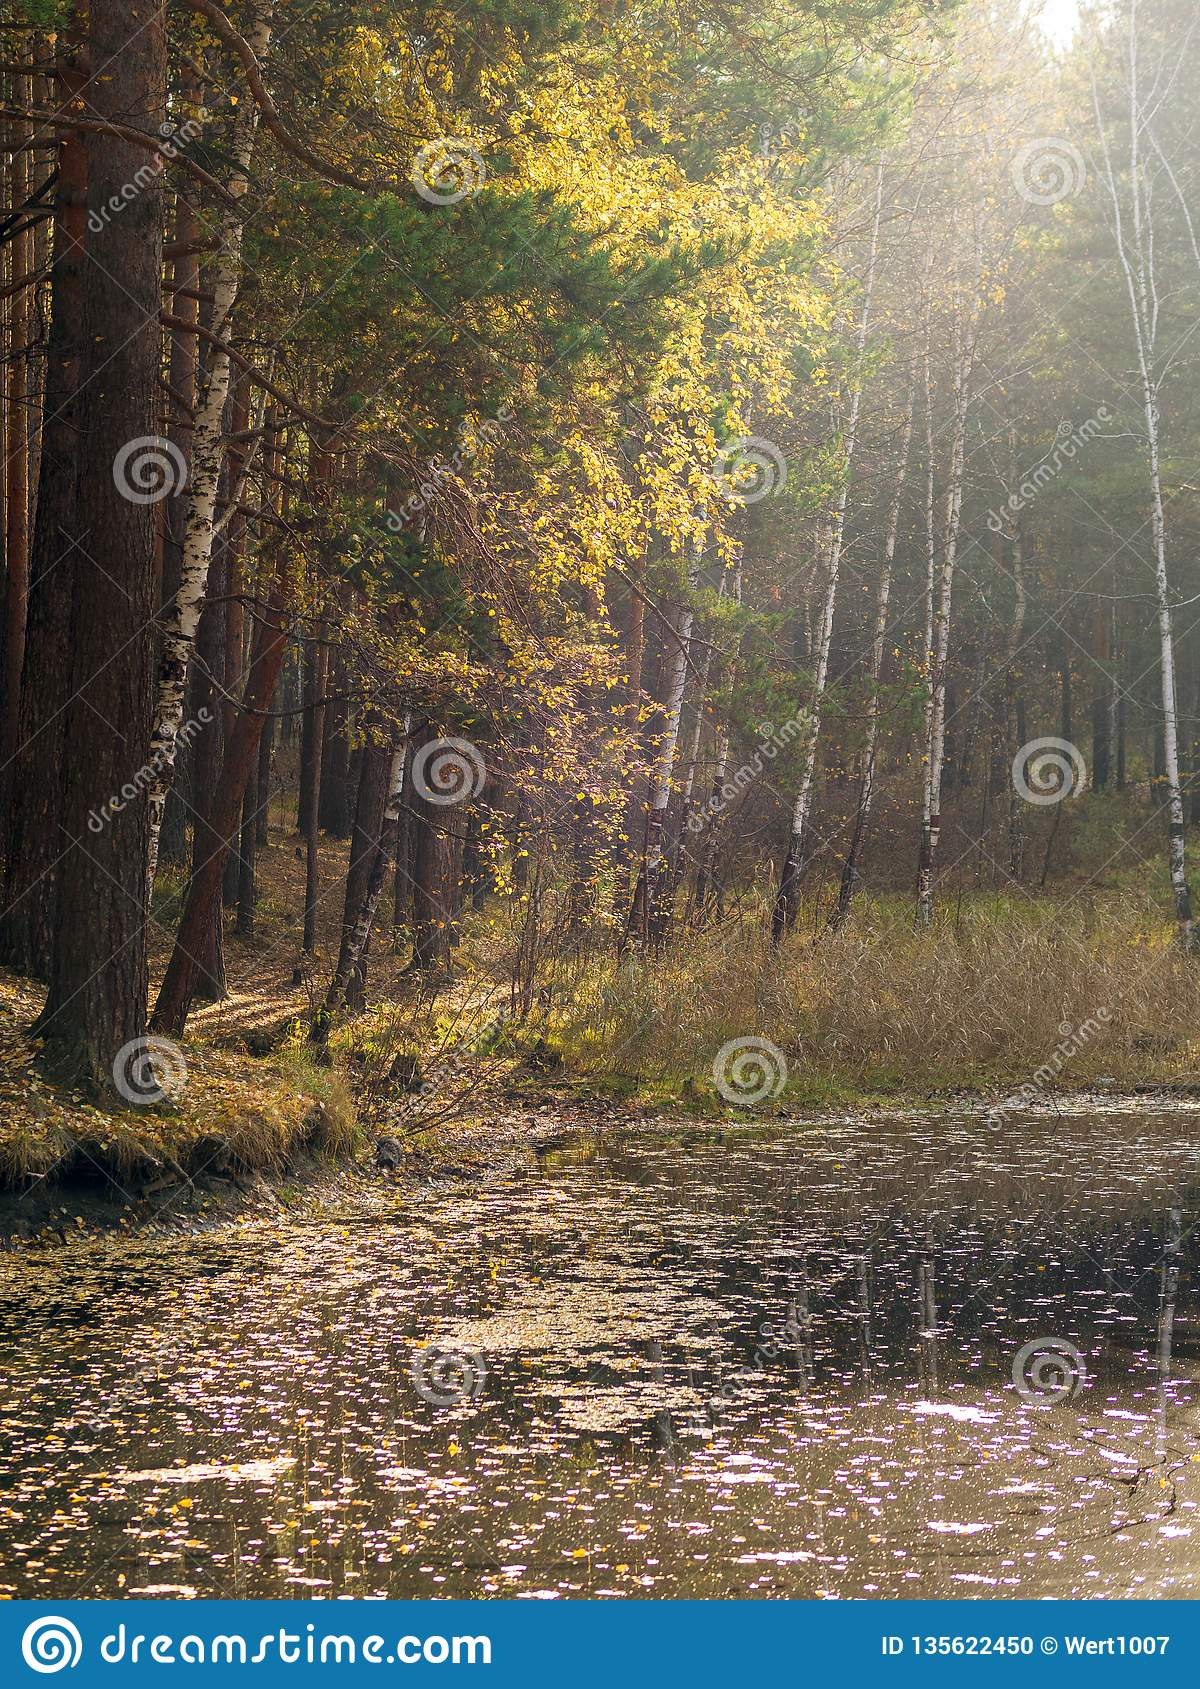 A small lake with pines and birches on the shore in the autumn forest